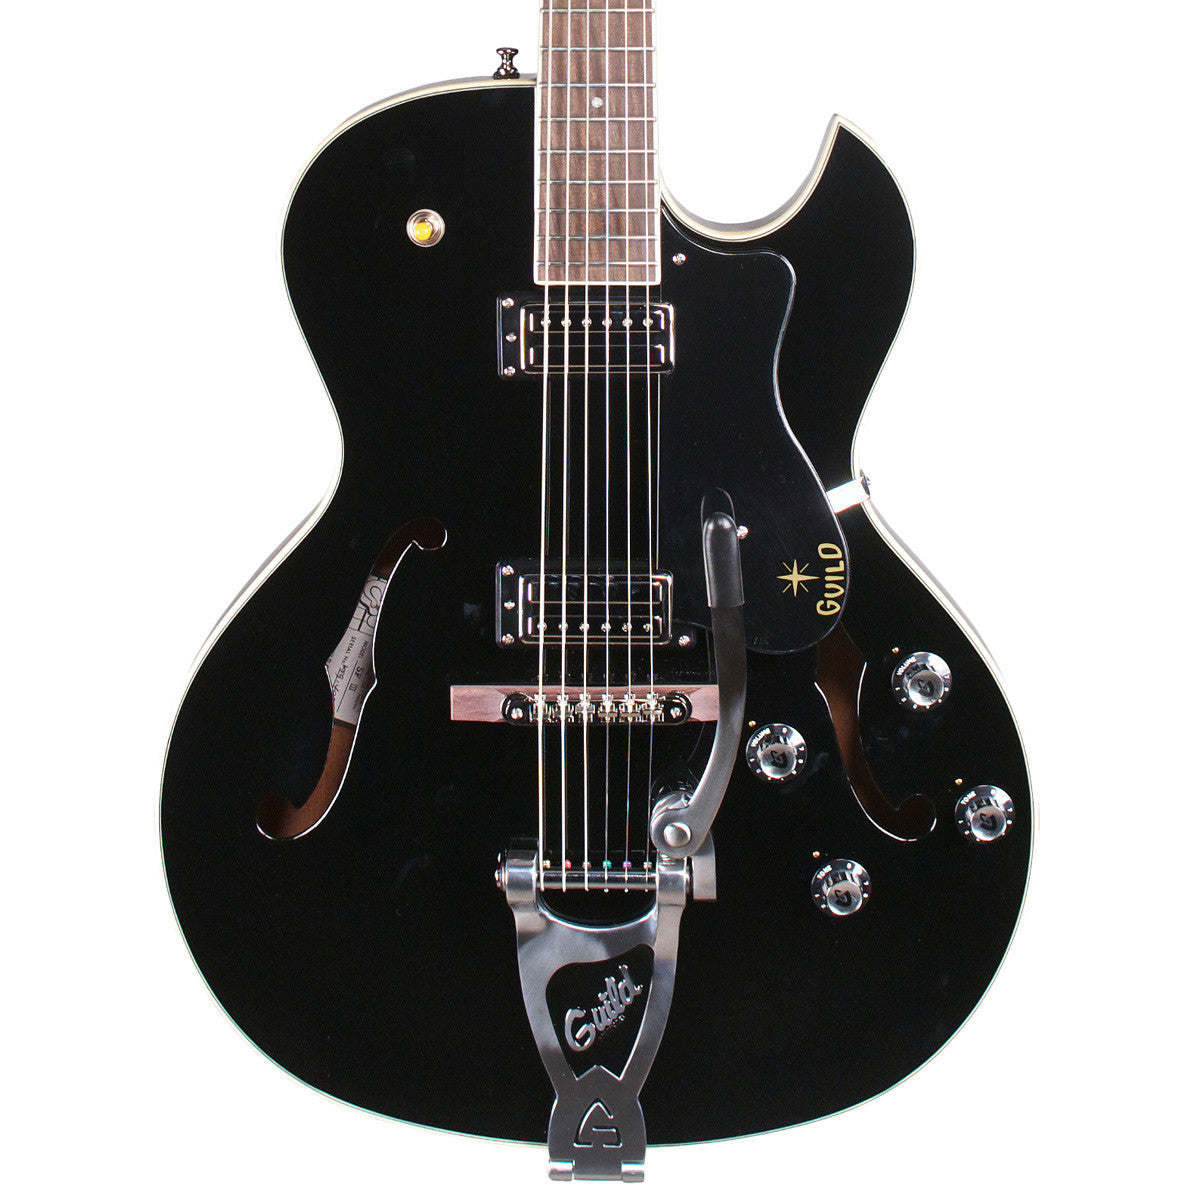 Guild Starfire III with Bigsby - Black - Newark St. Collection - Vintage Guitar Boutique - 1